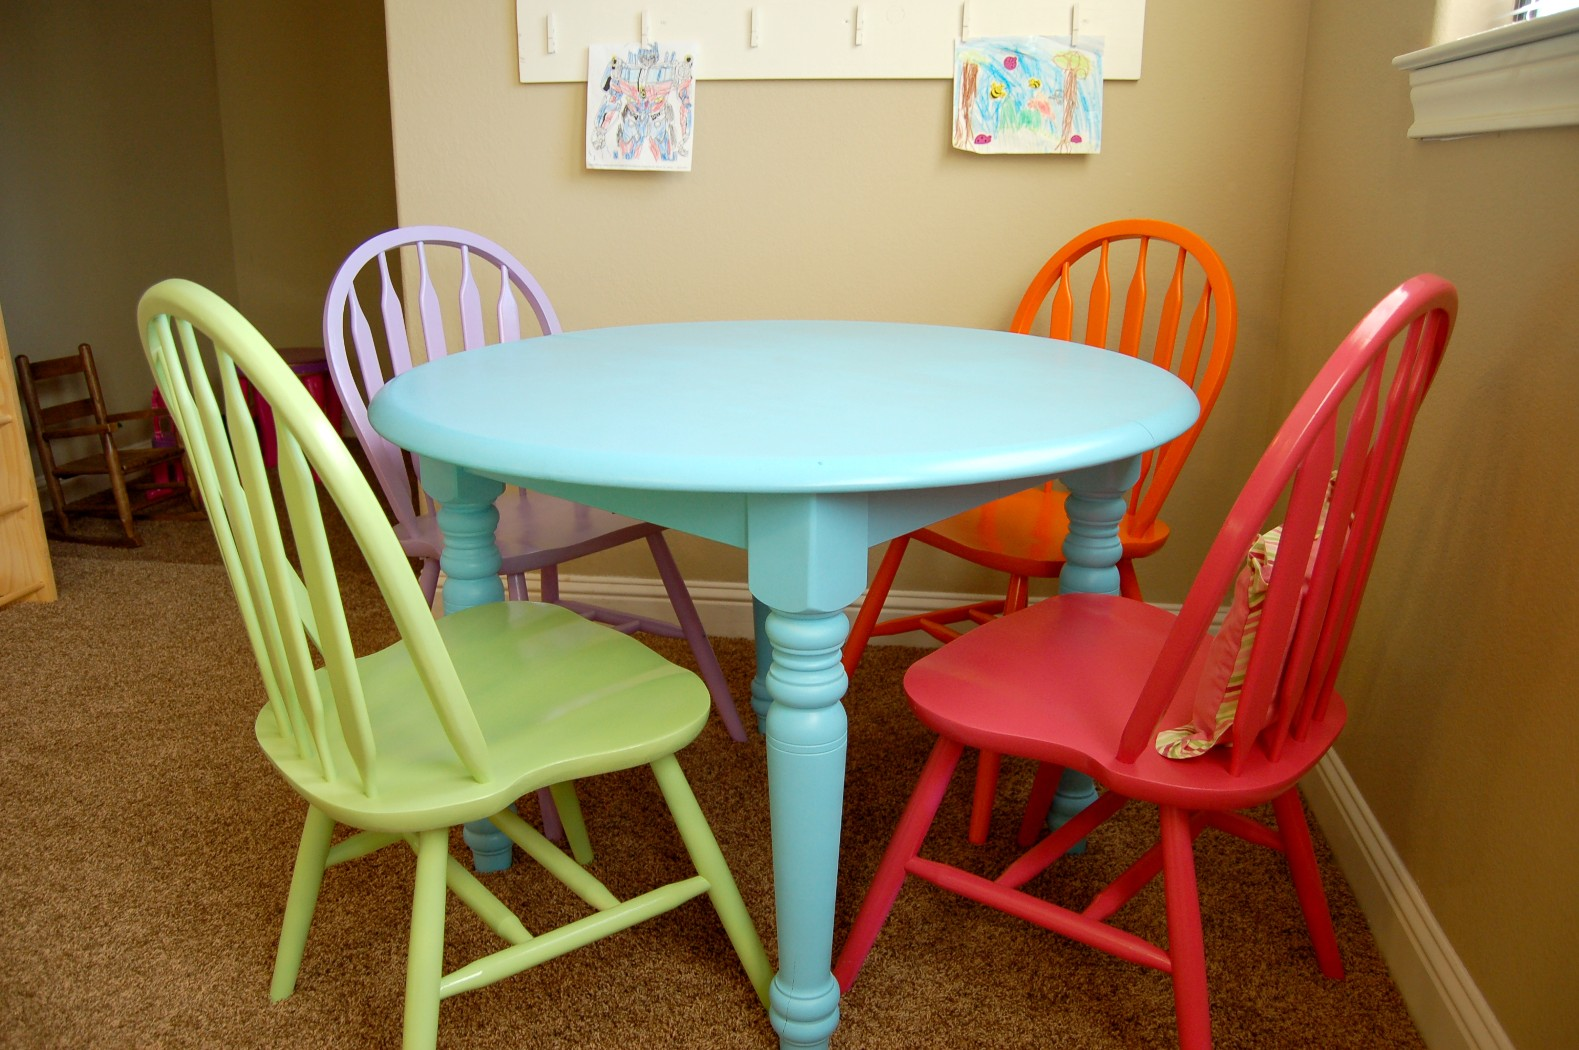 Painted Kitchen Chairs Cabinet Grease Remover New Craft Table And For The Playroom Scattered